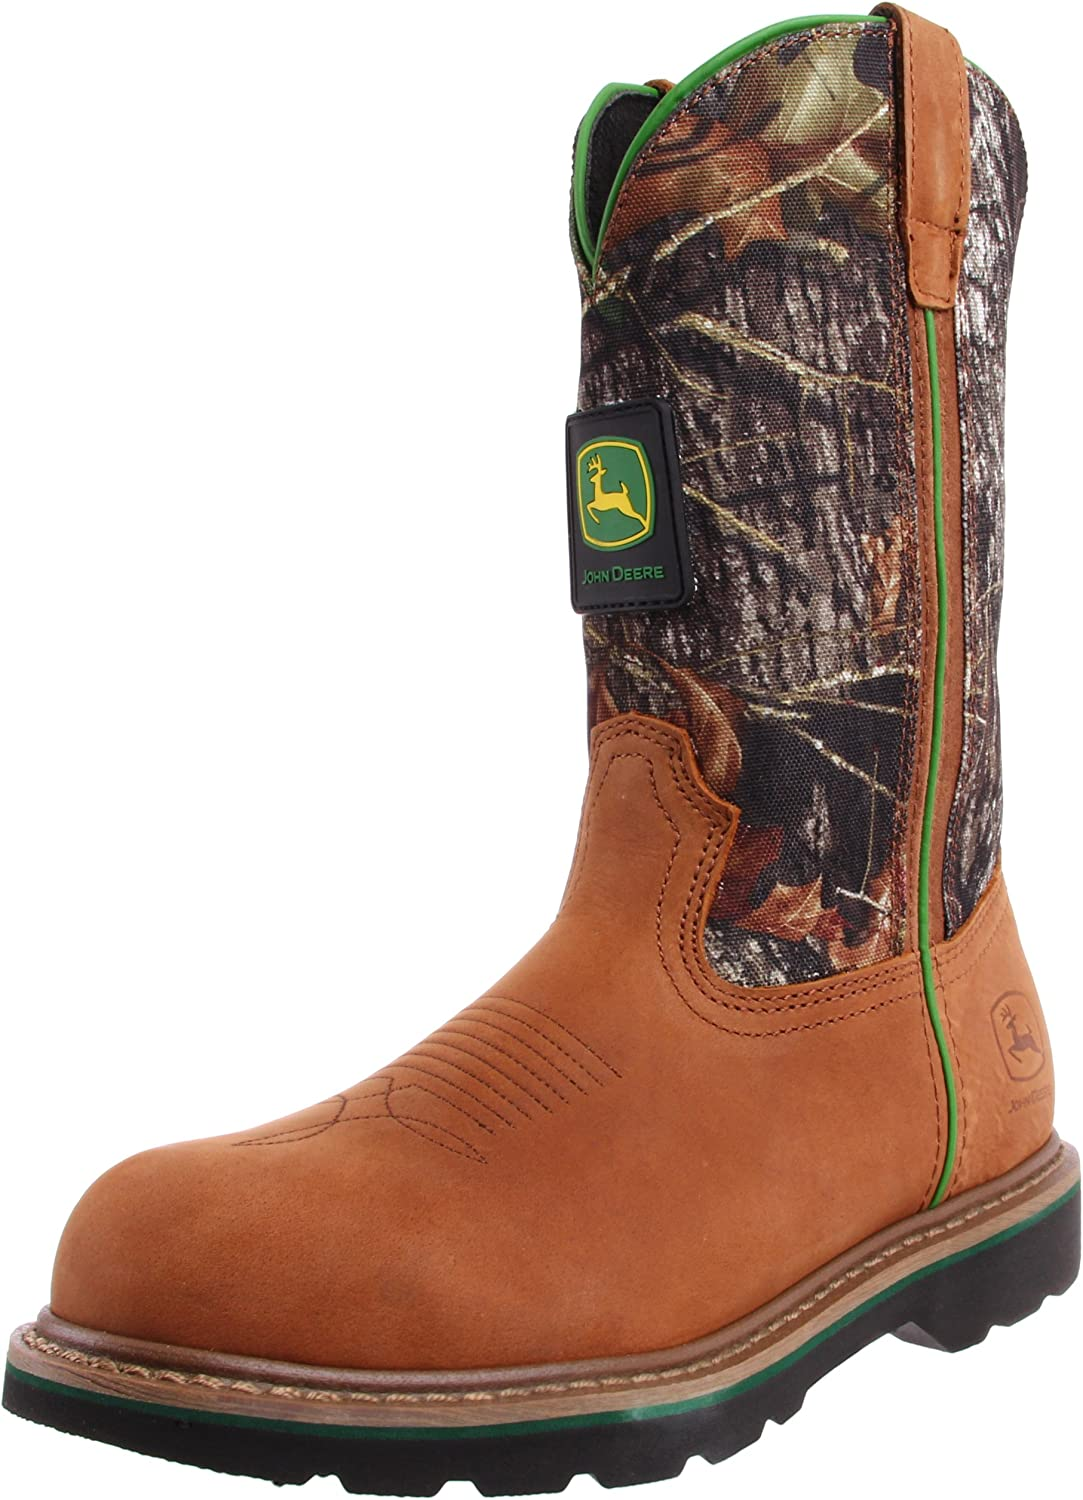 John Deere Men's 11 Inch Mossy Oak Camo Steel Toe Boot